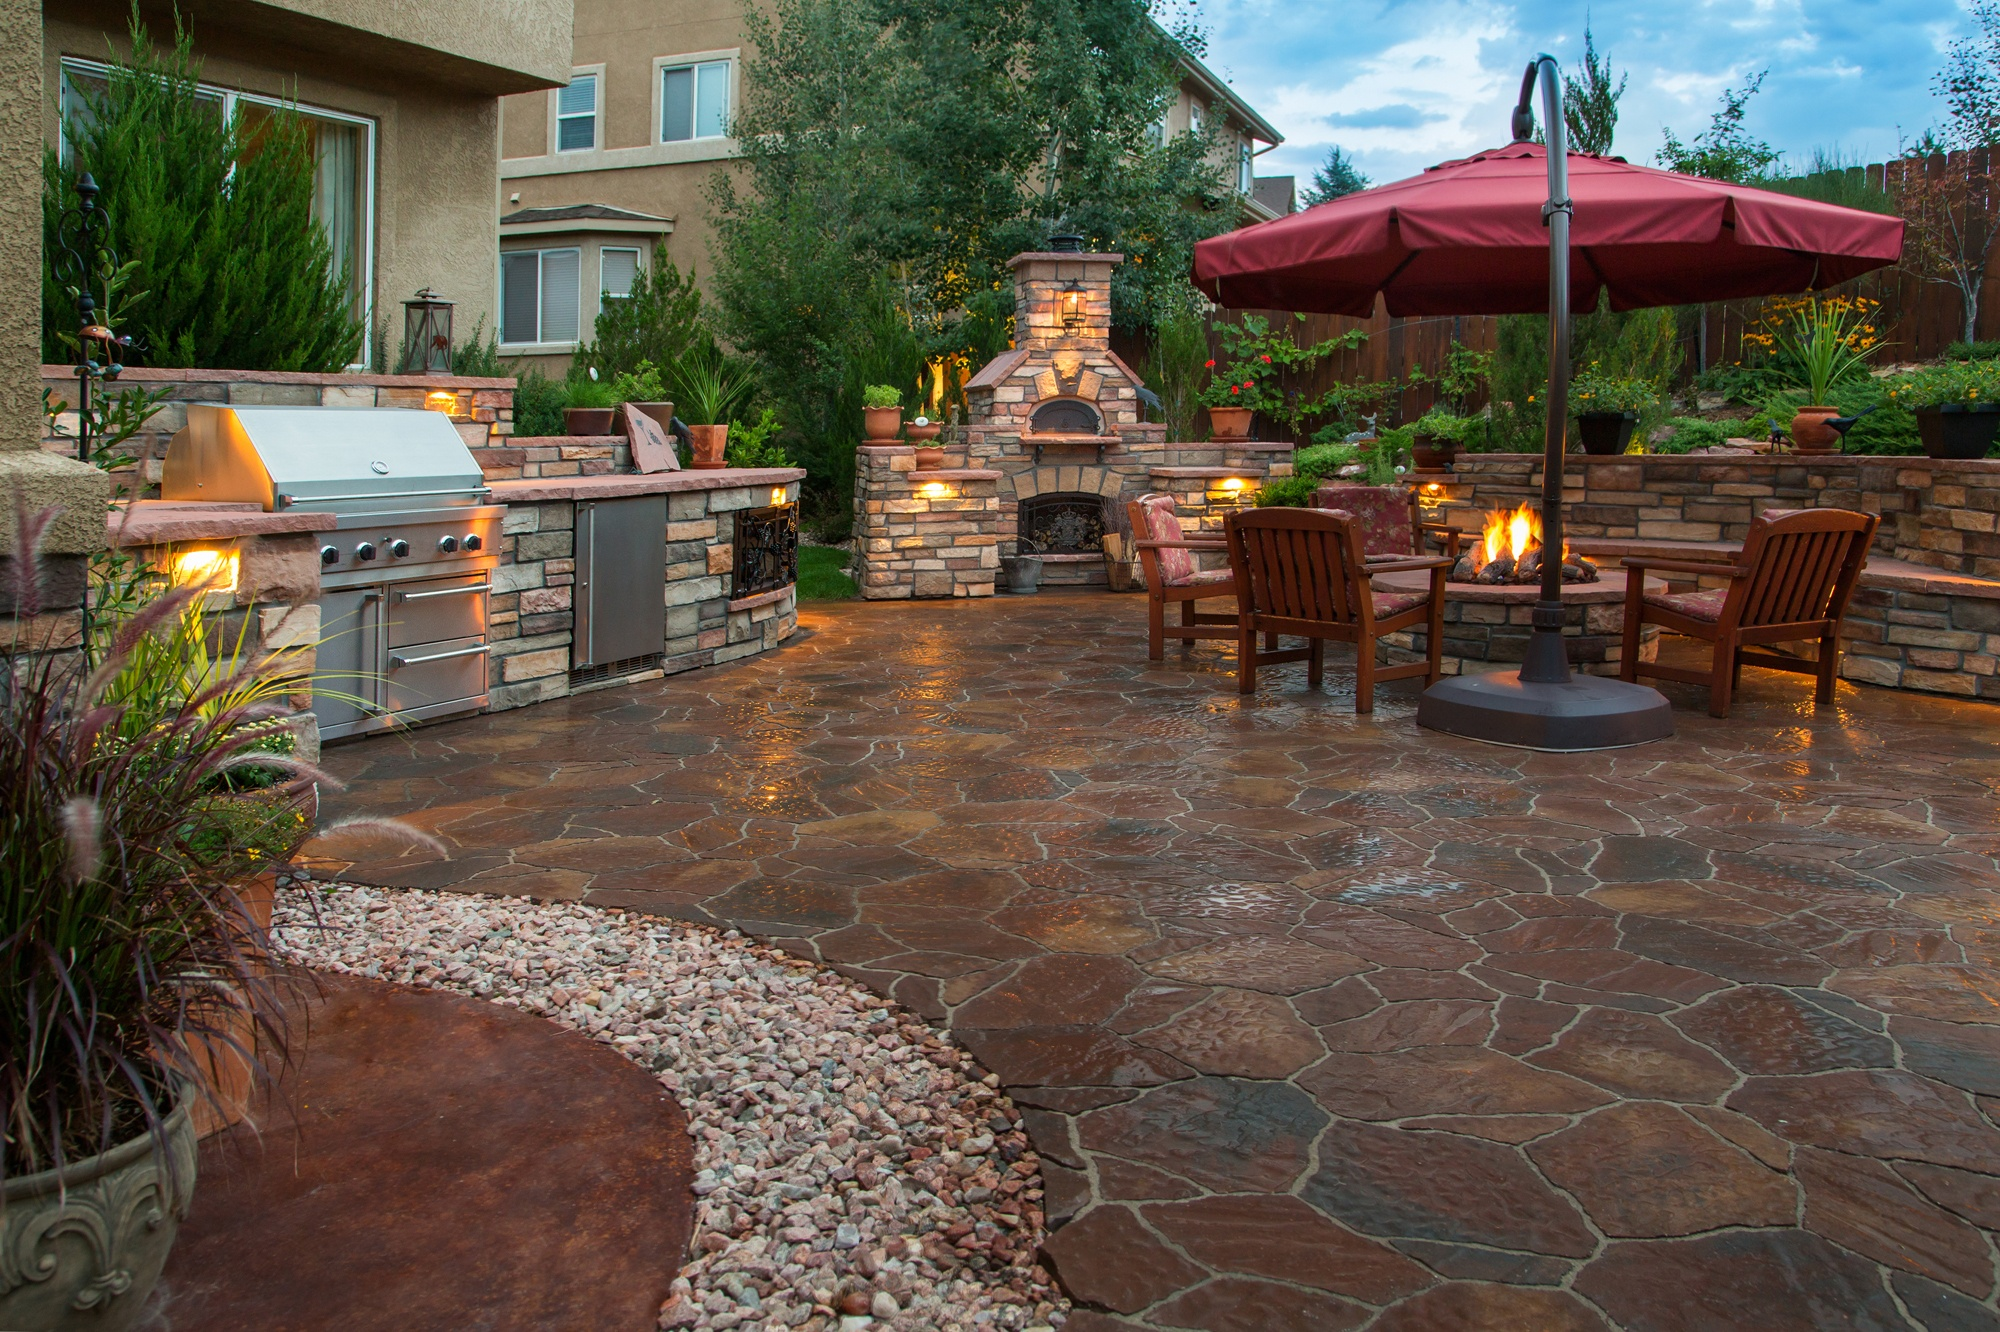 , 3 Things to Consider When Designing Outdoor Living Spaces